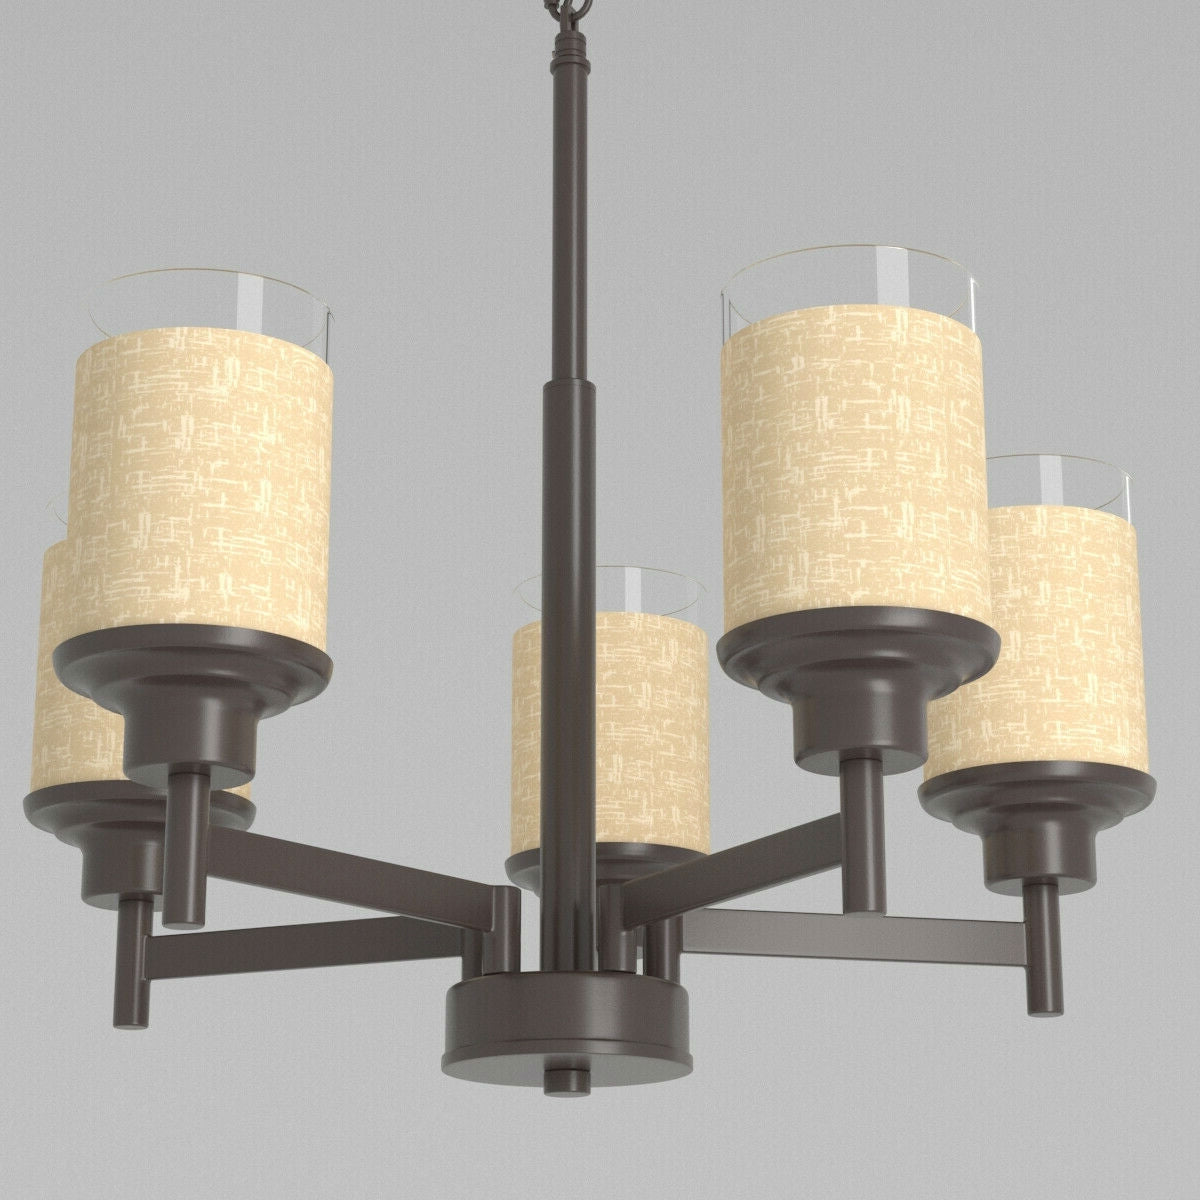 5 Light Farmhouse Espresso Pendant Chandelier